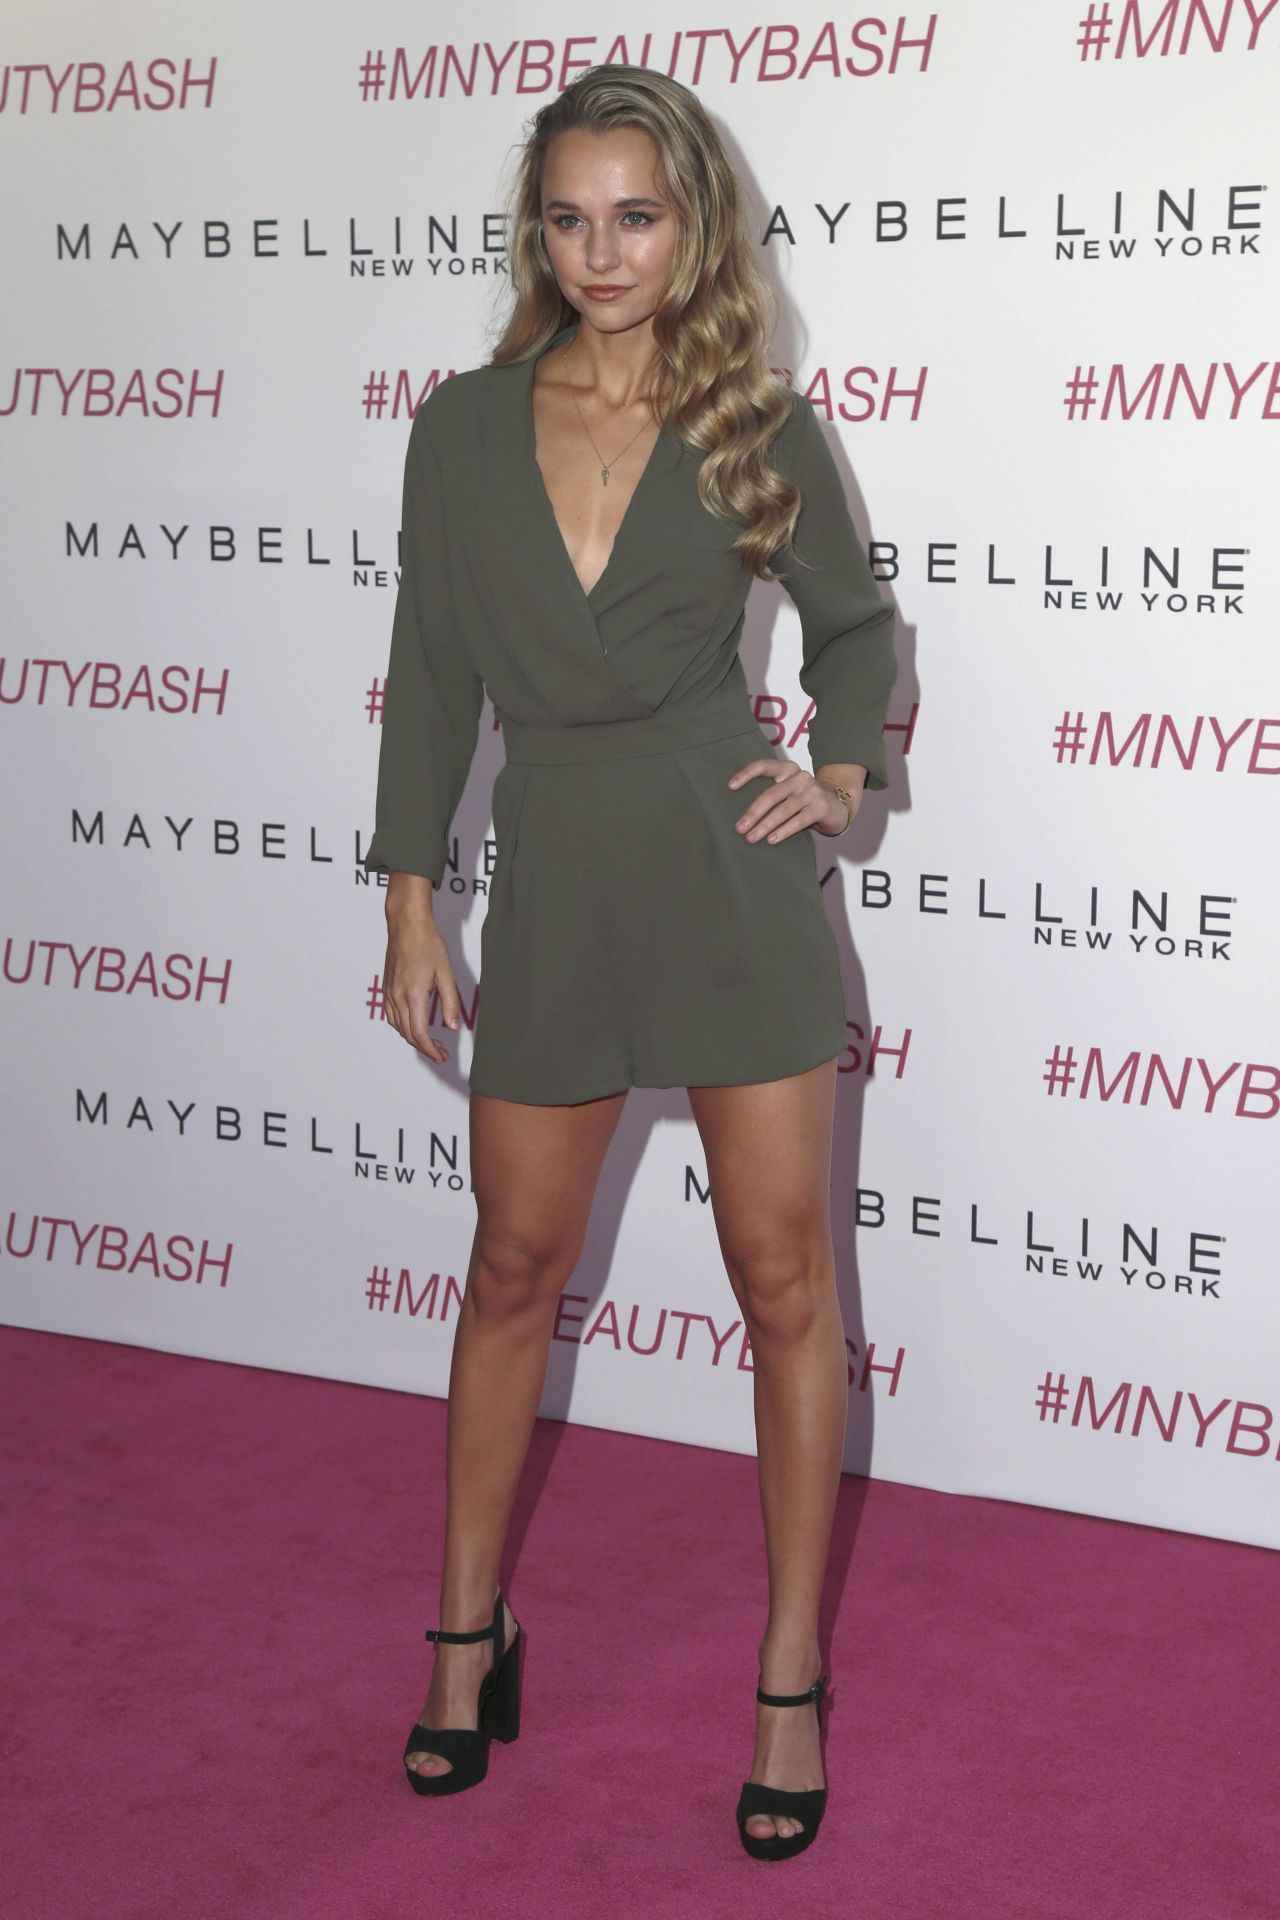 Madison Iseman Maybelline New York S Beauty Bash In Los